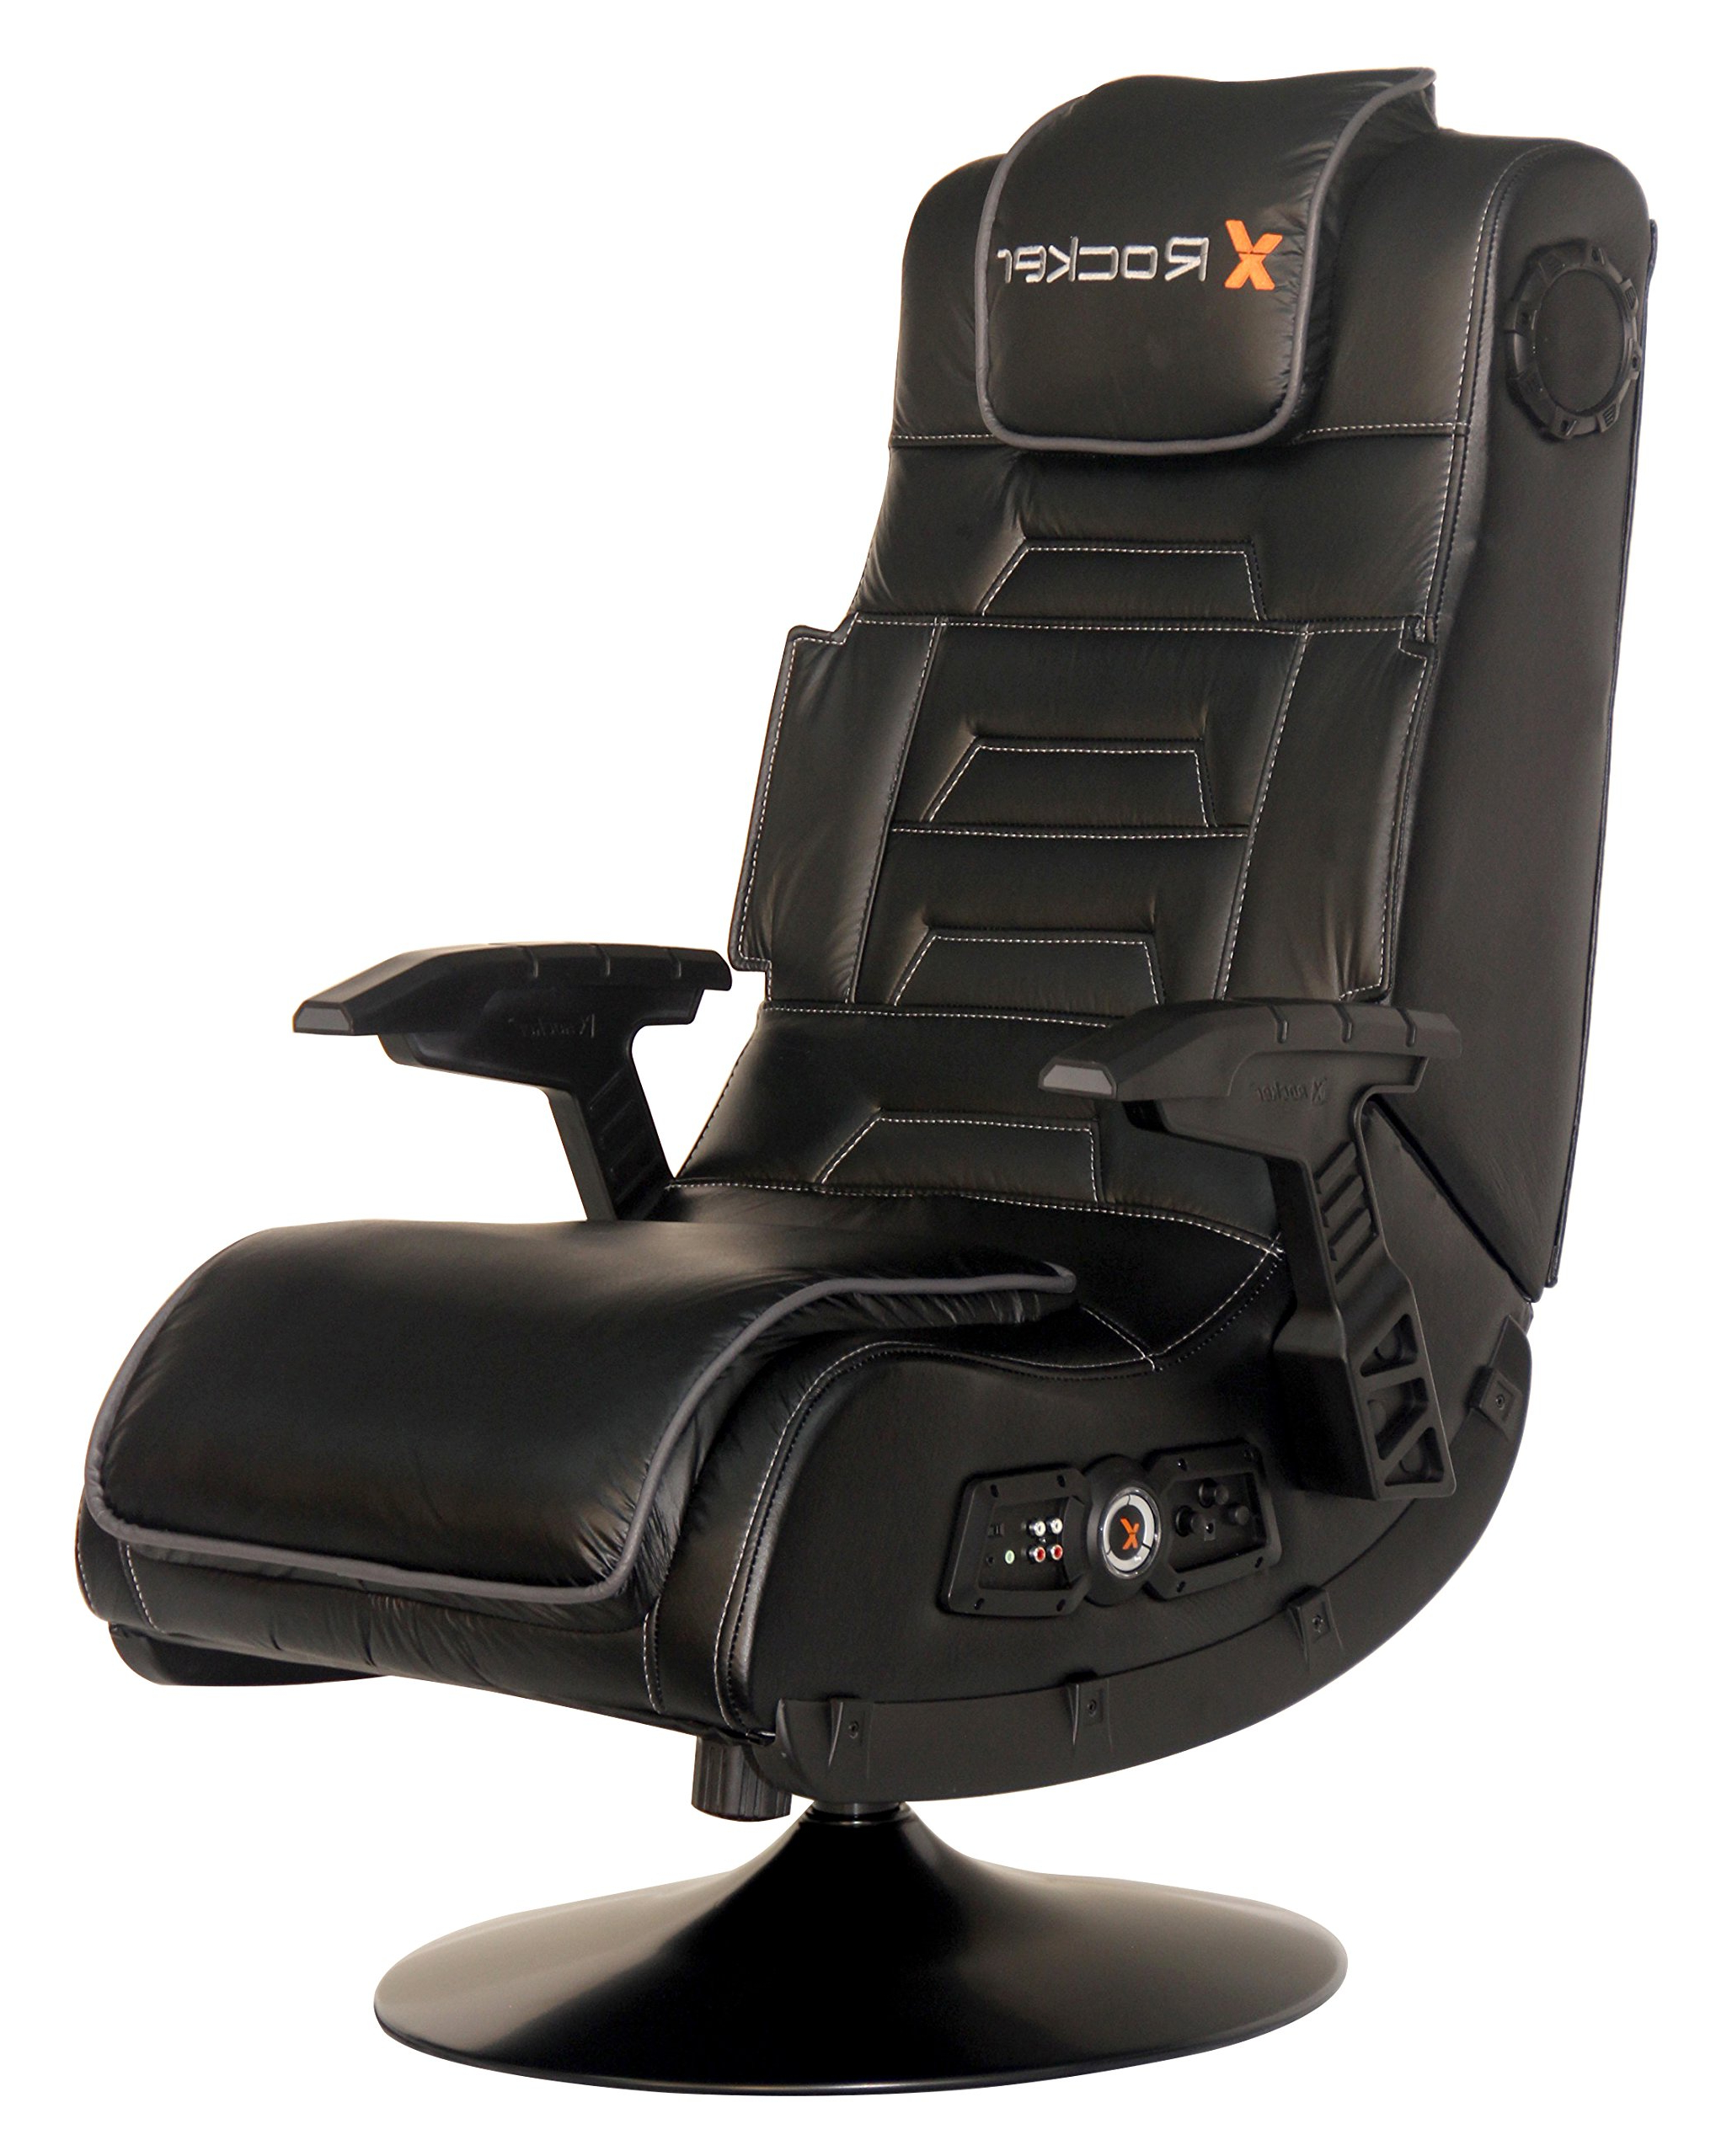 Best Gaming Chair 0gdr Best Gaming Chairs for Pc